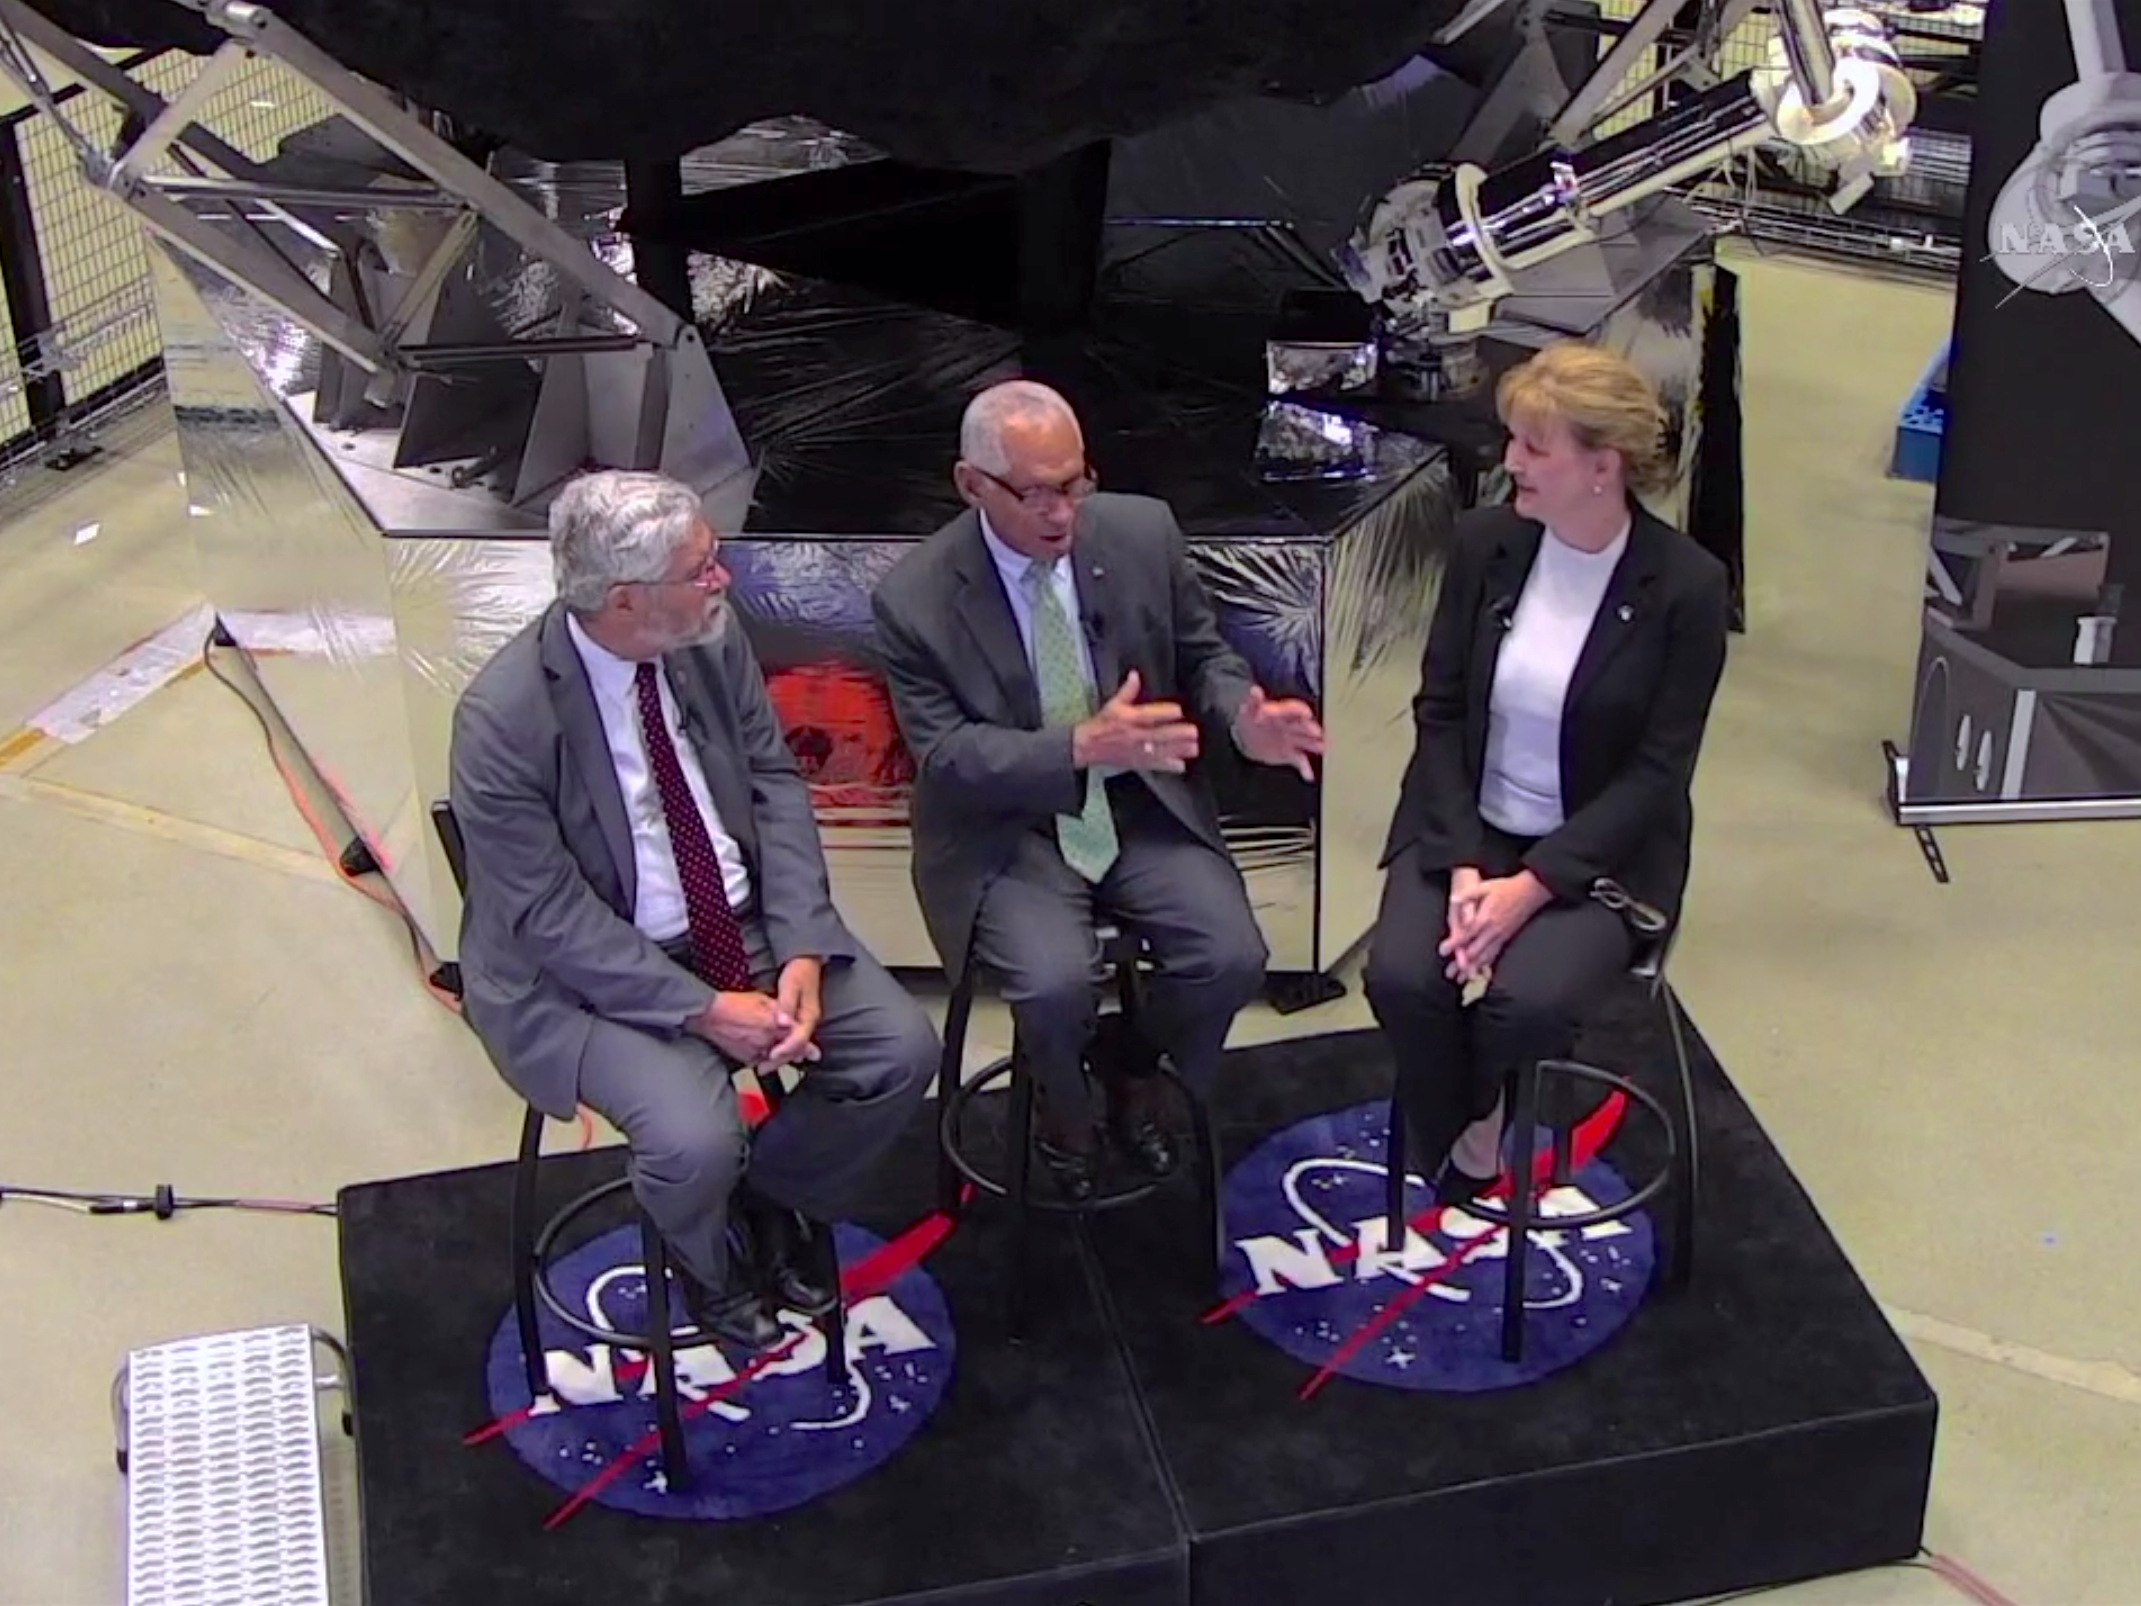 Left to right: Holdren, Bolden, and Gates.